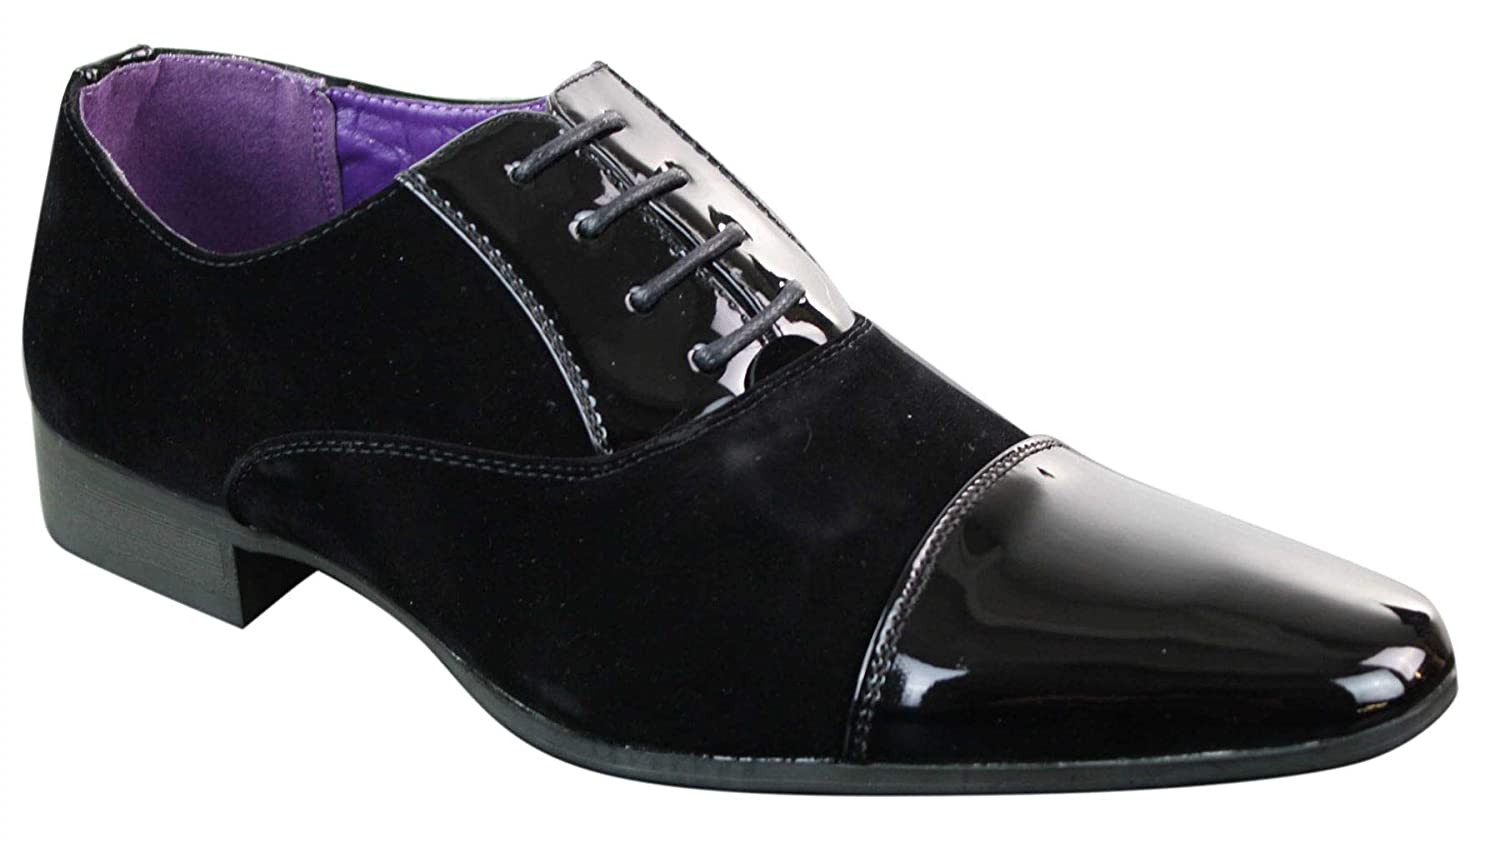 Elong Mens Patent Laced Shiny Shoes Suede Leather Smart Formal Italian Design